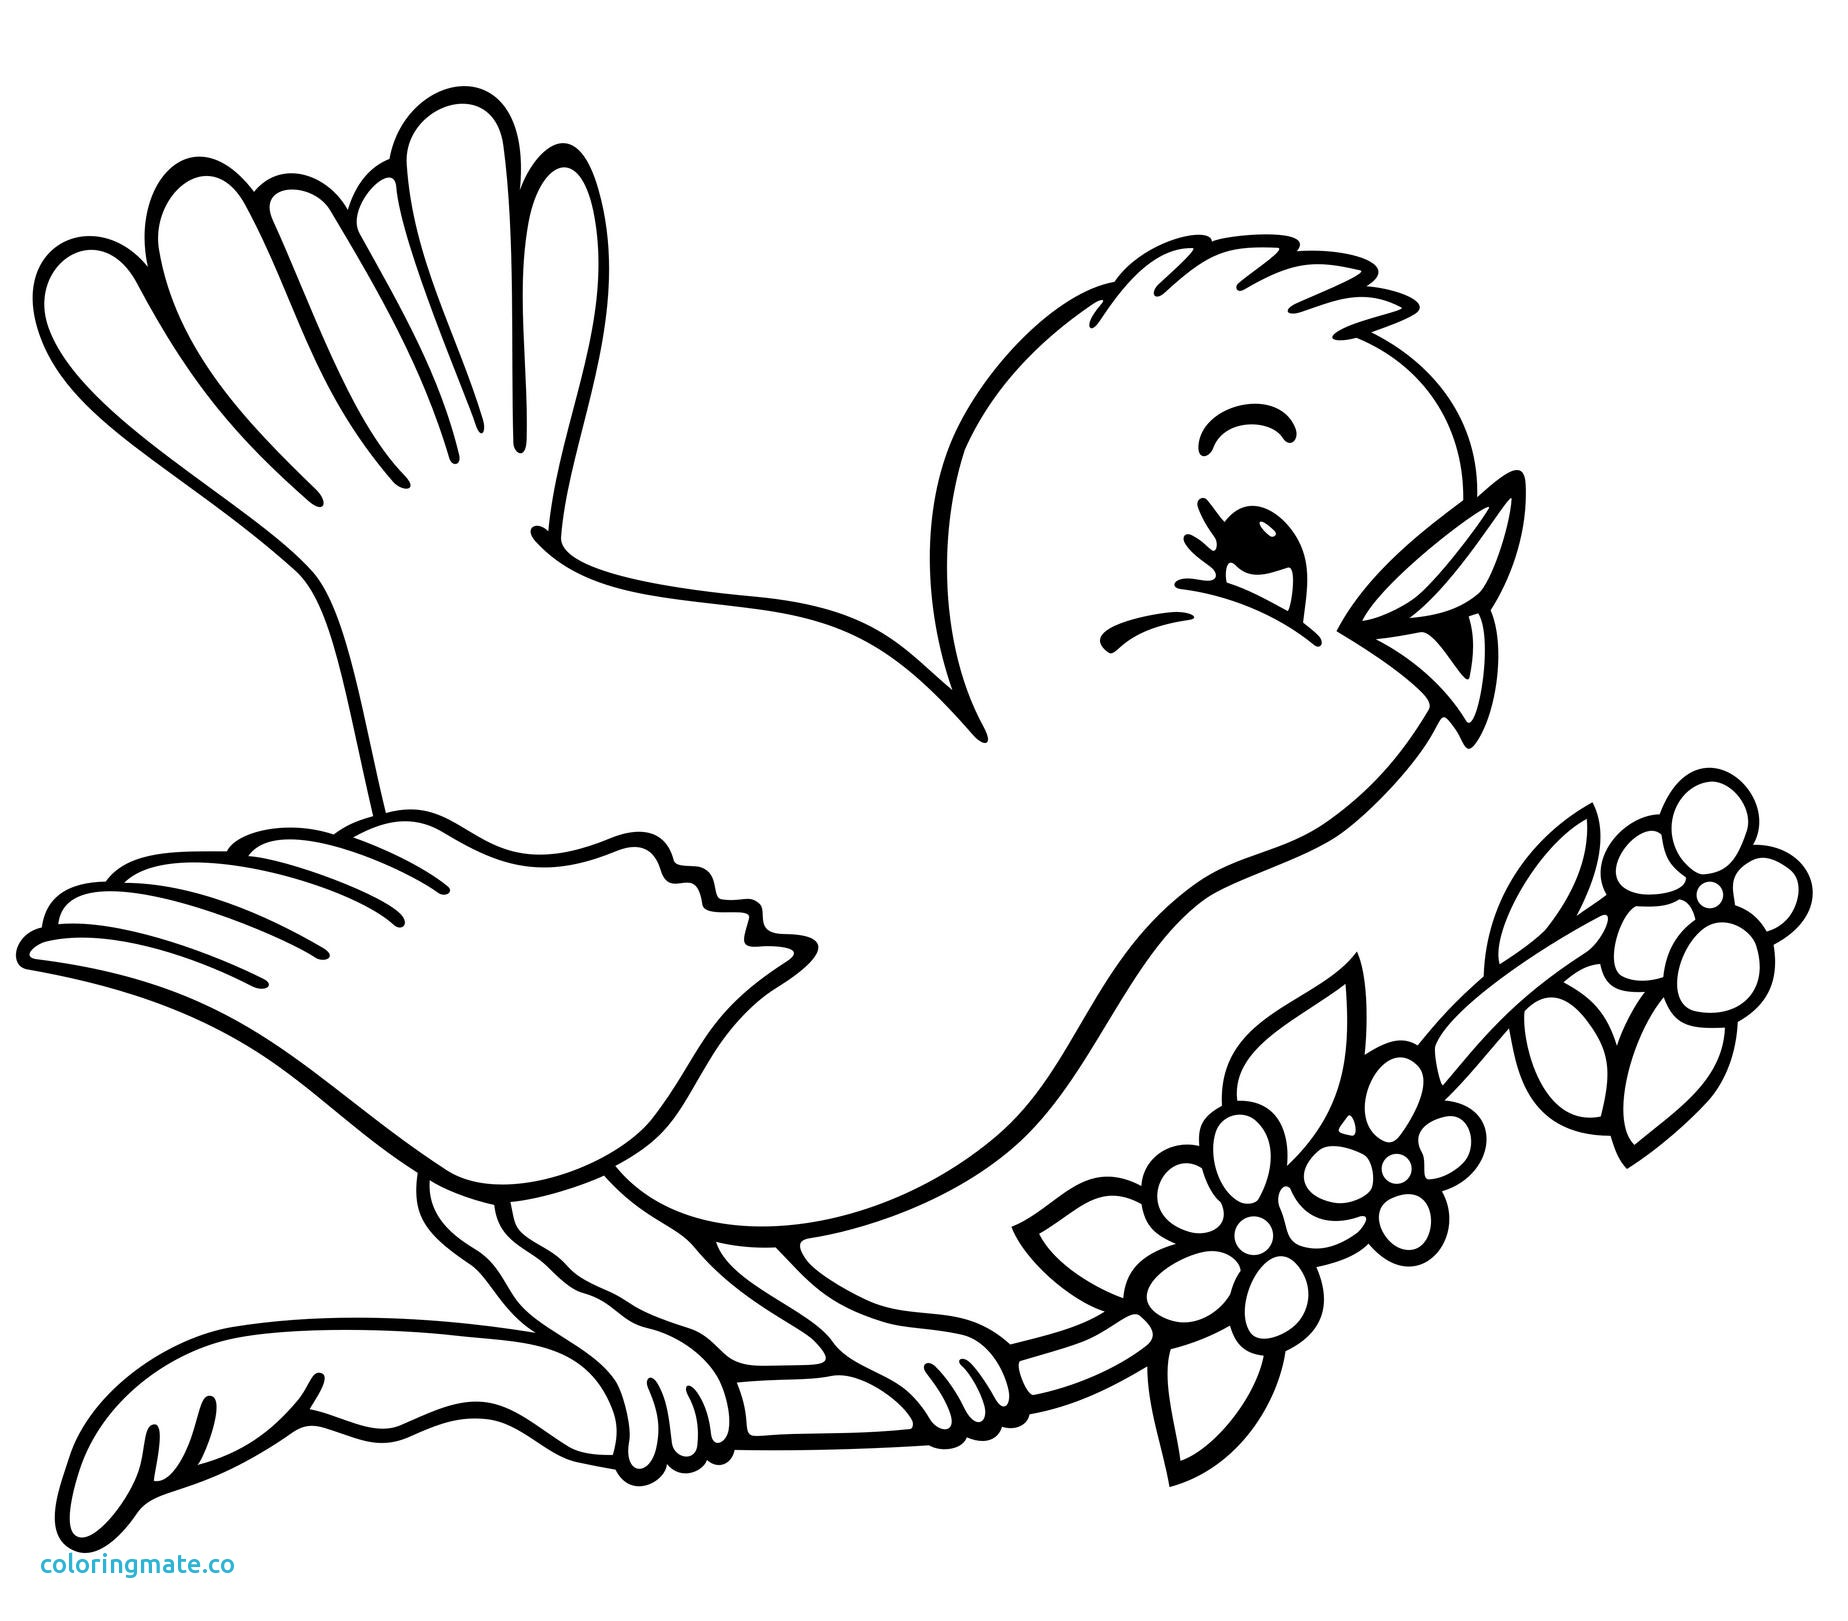 1848x1621 Parrot Coloring Pages Unique Birds Coloring Pages To Knowing